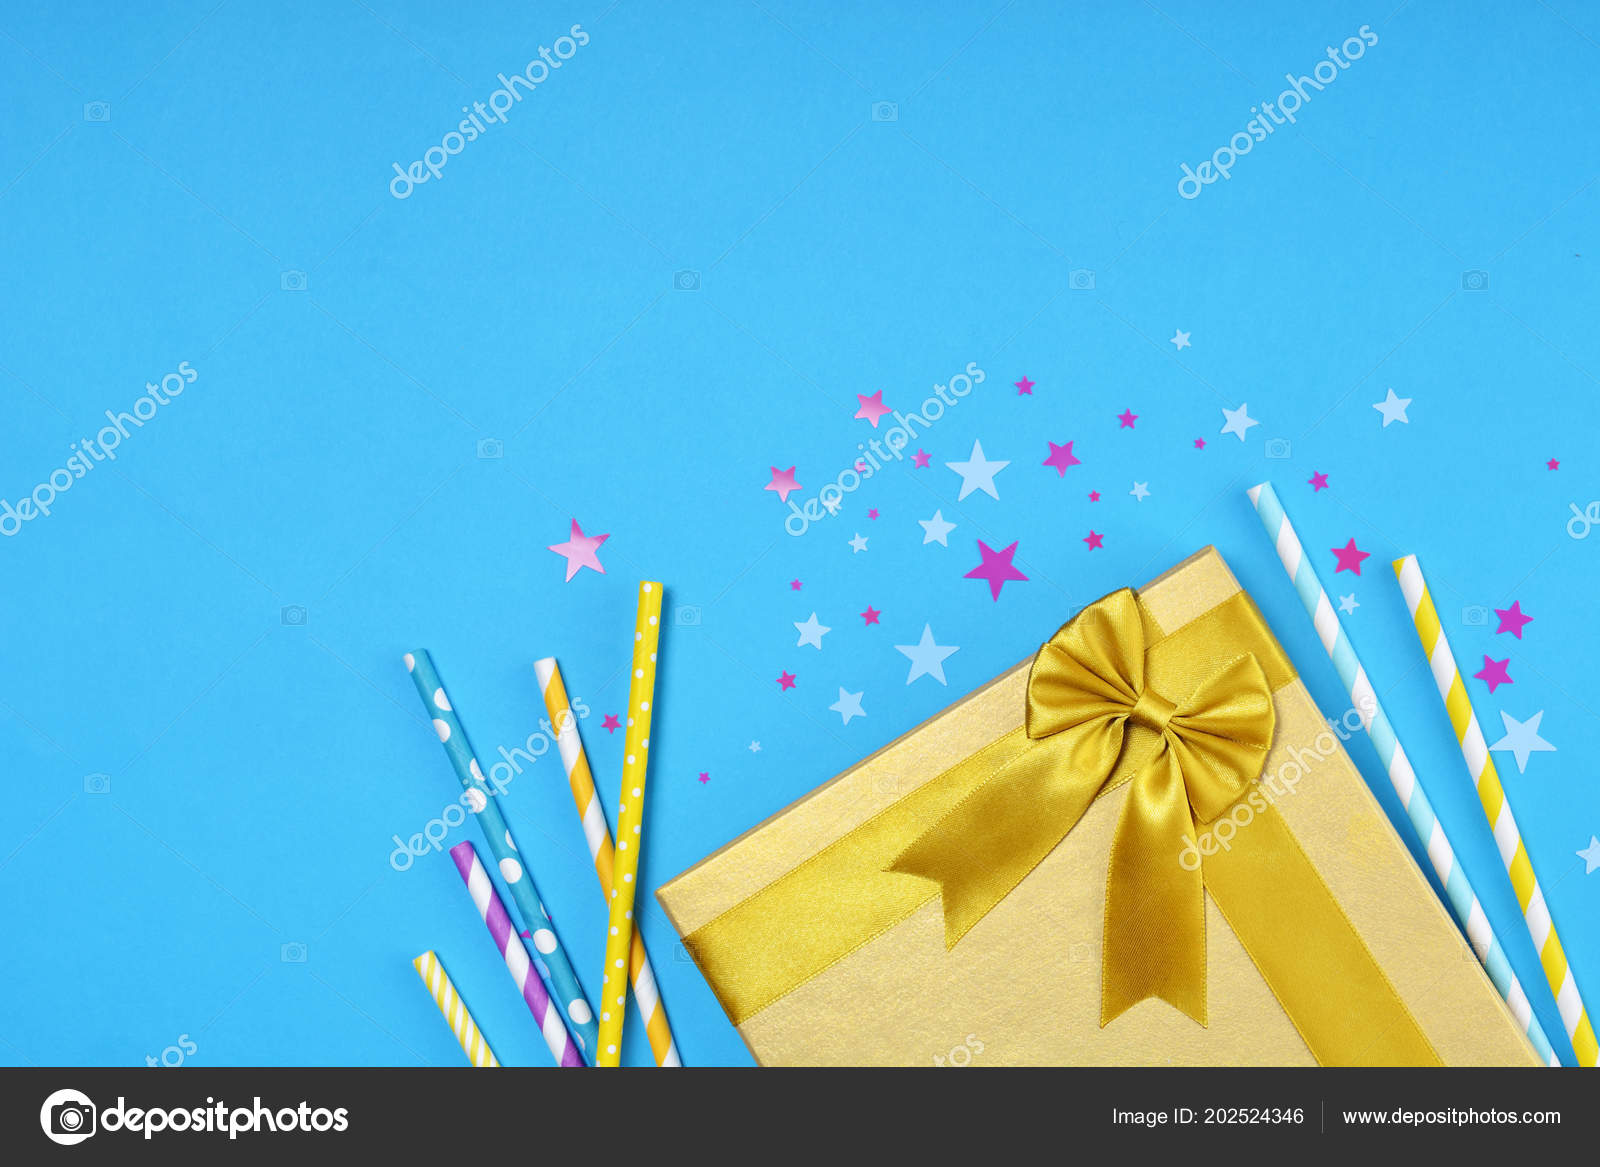 Golden Shiny Classic Gift Box Satin Bow Cocktail Straws Confetti